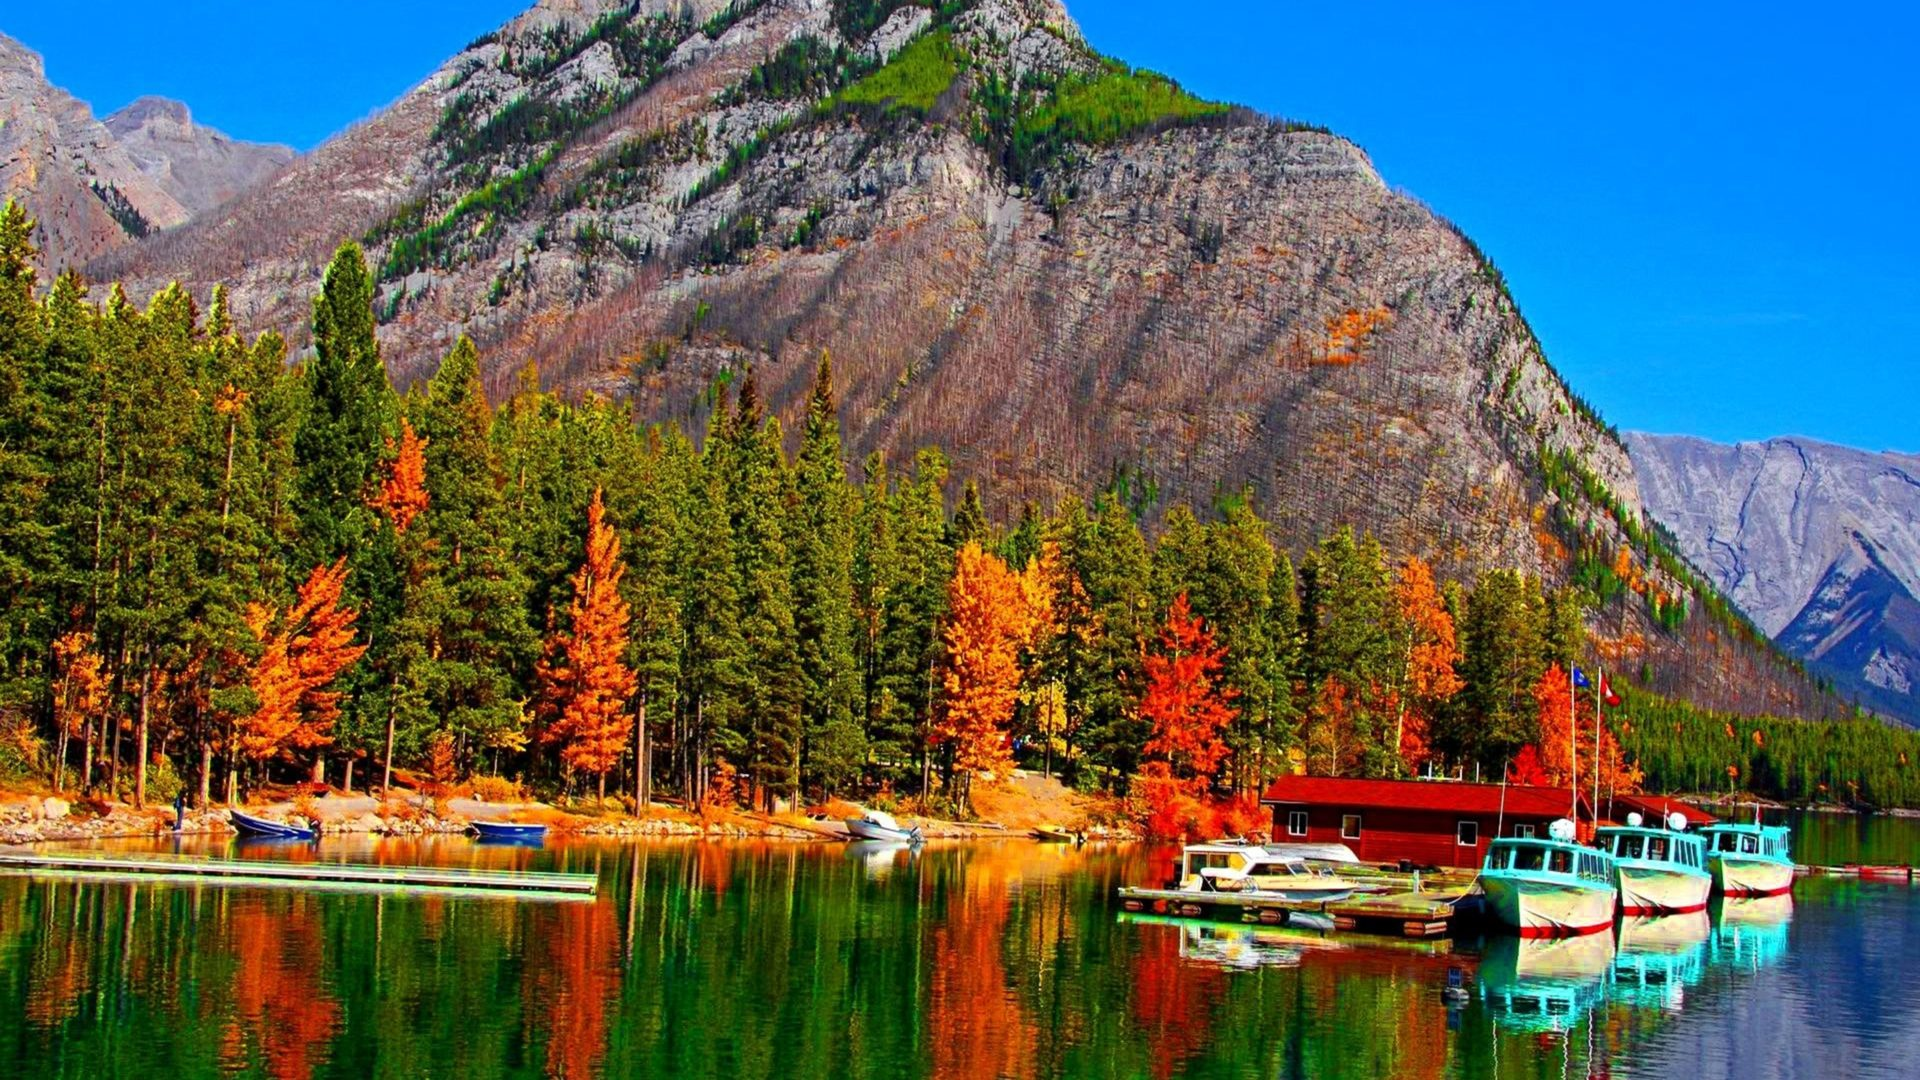 Fall Flowers Wallpaper Free Fall Colors On Lake Banff In Canada Boats Hd Wallpaper